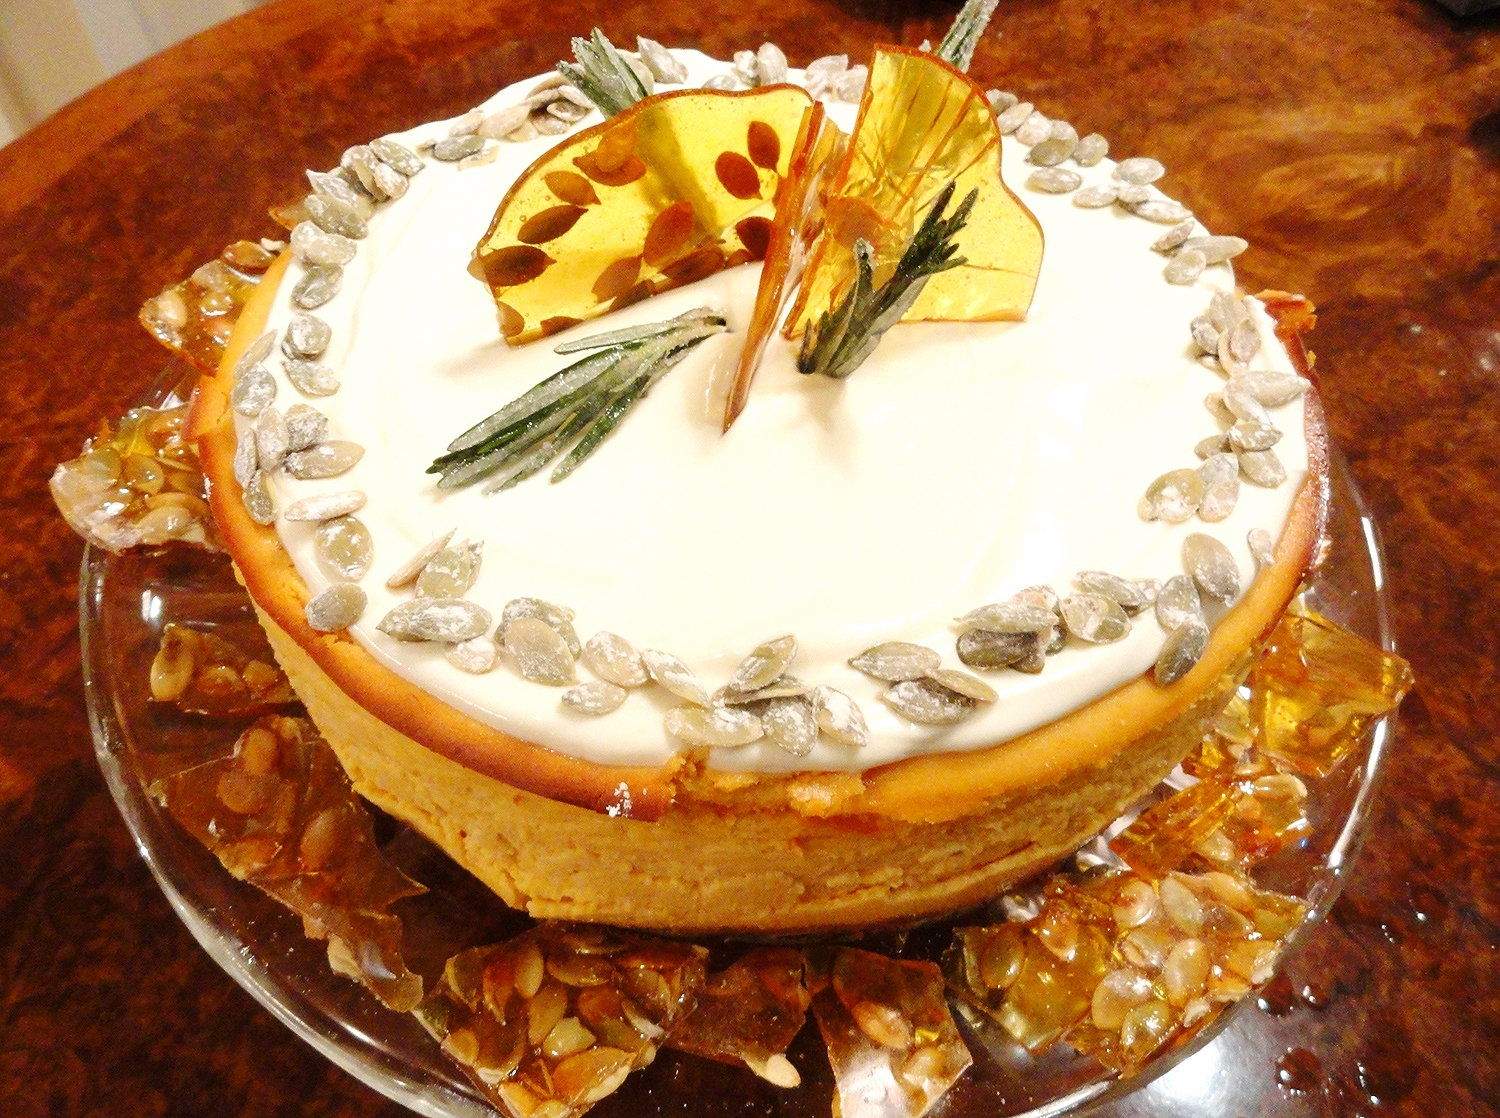 Pumpkin cheesecake, sweetened sour cream topping, sugared pepitas and rosemary, pumpkin seed brittle